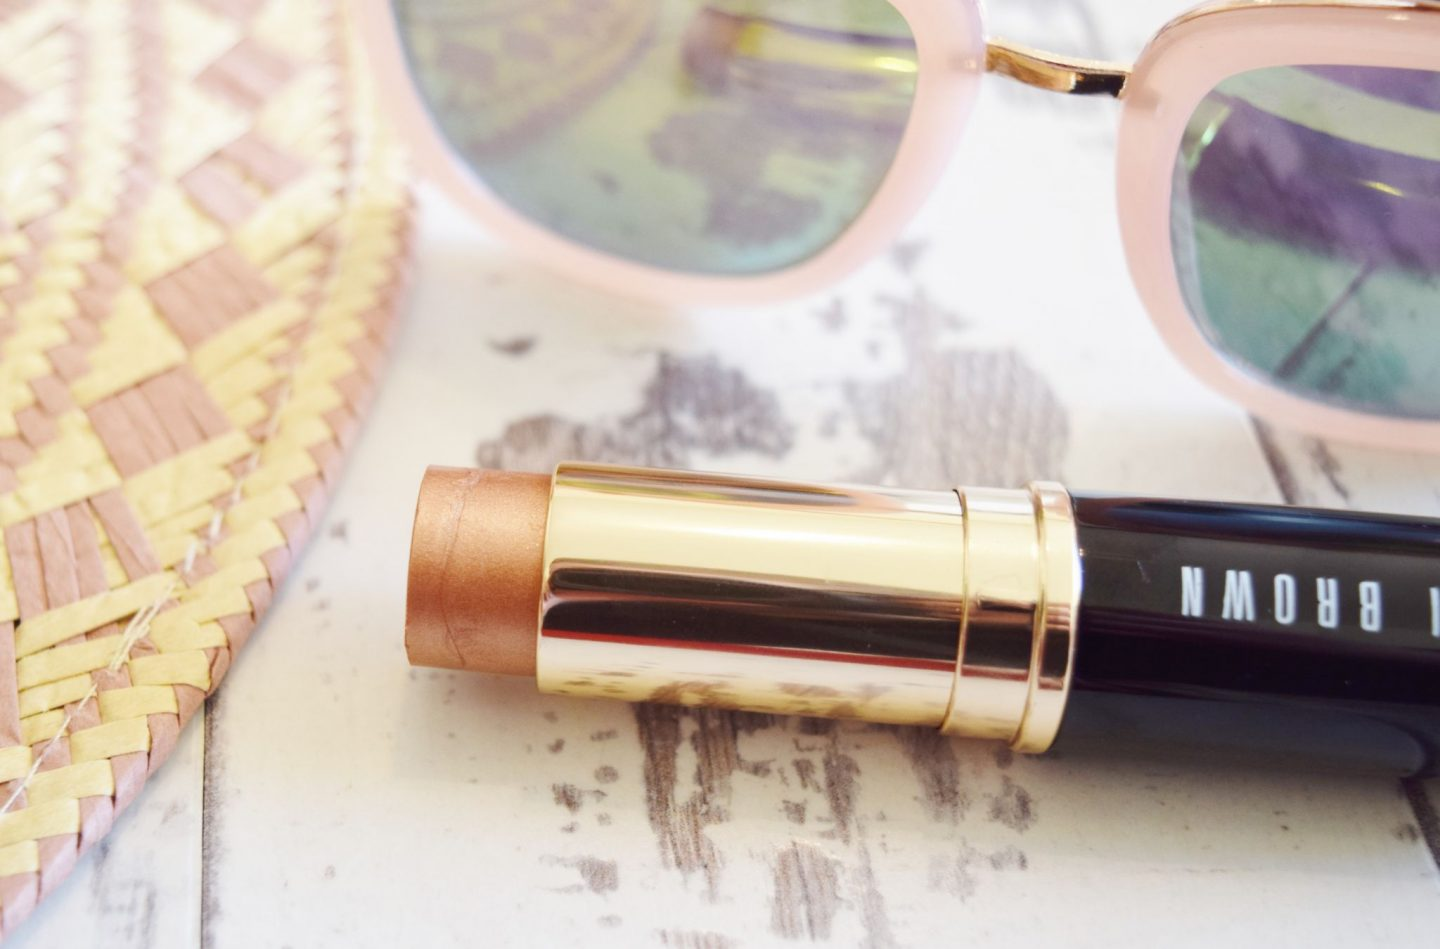 Bobbi Brown Glow Stick in Sunkissed